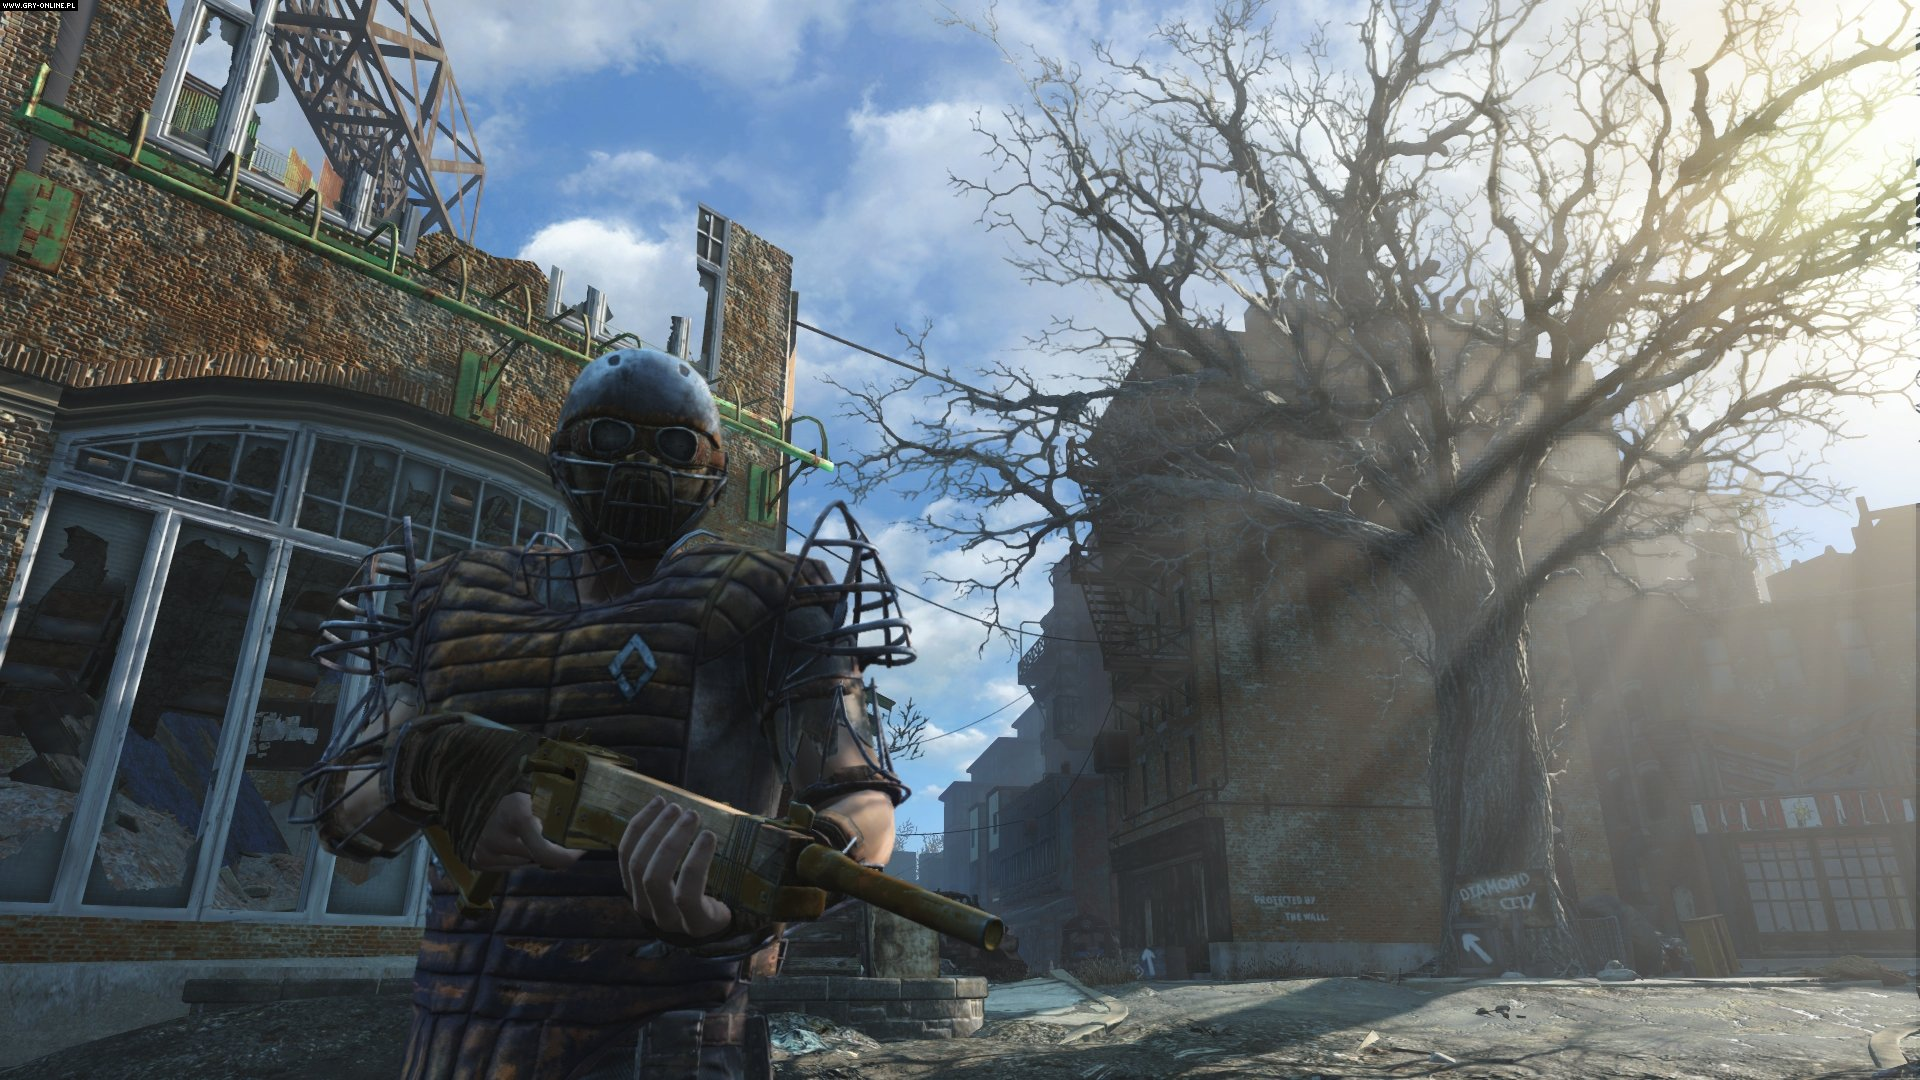 Fallout 4 PC Games Image 4/109, Bethesda Softworks